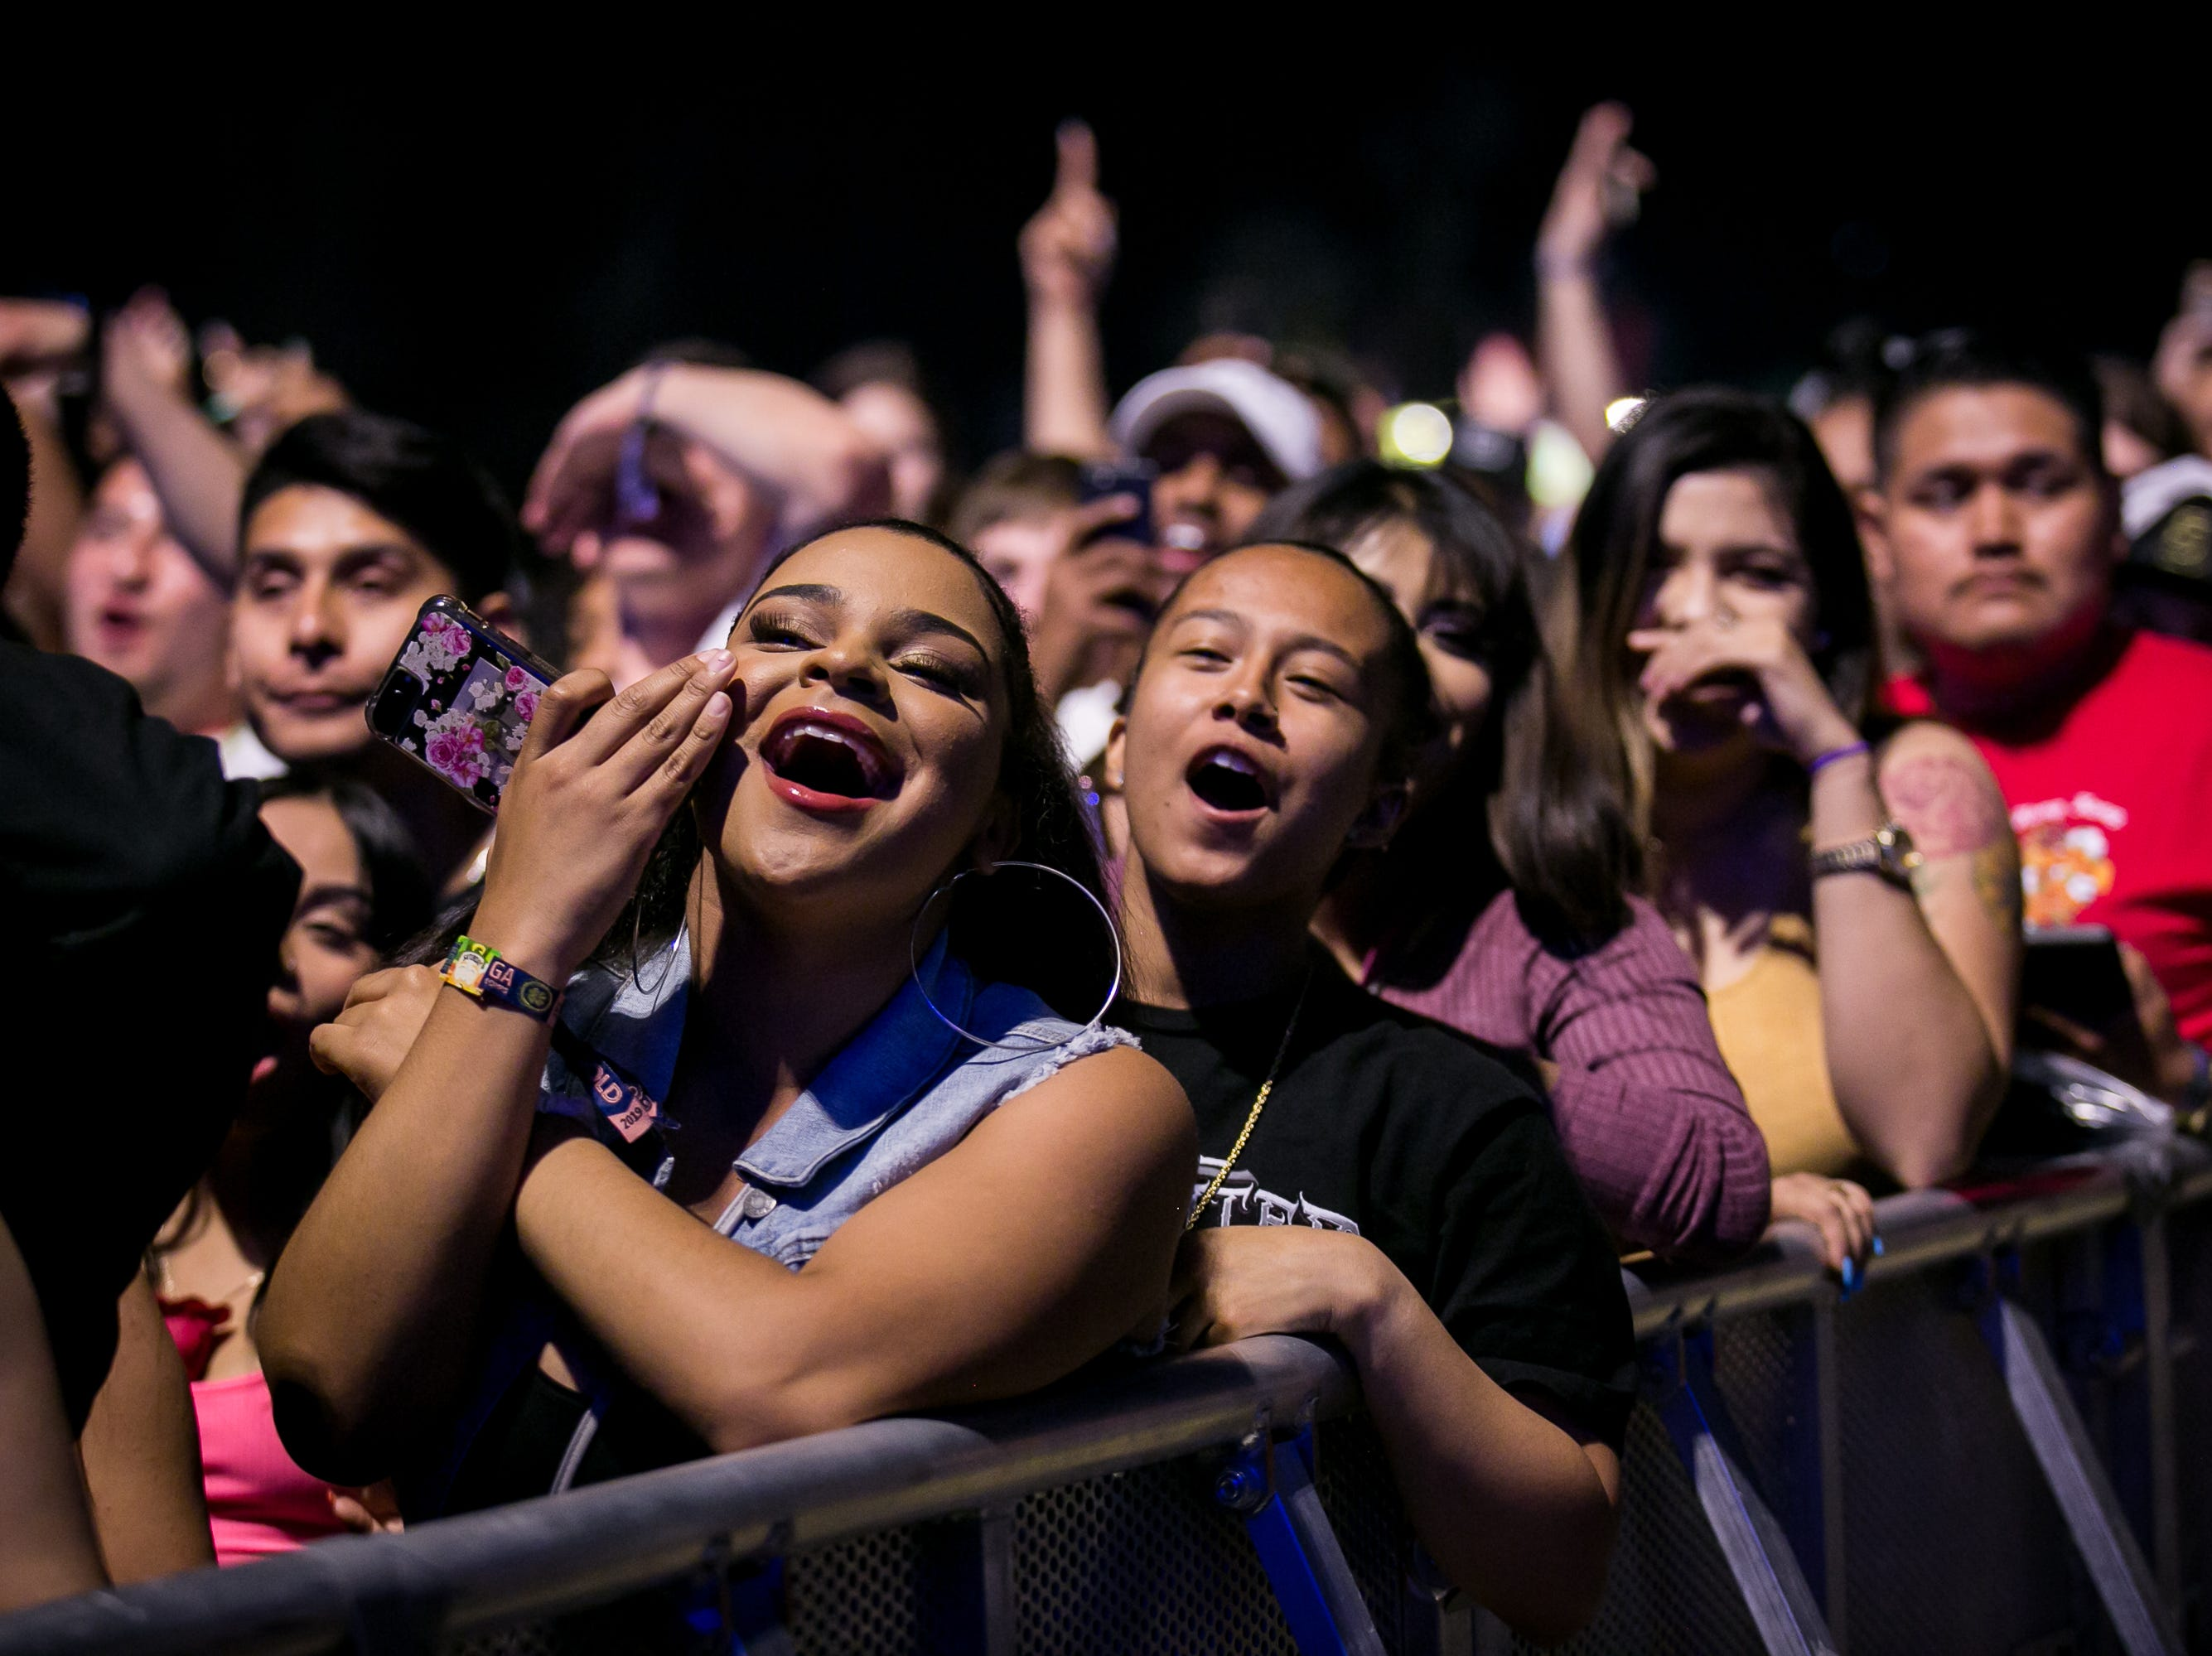 Fans cheer on Kodak Black during Pot of Gold Music Festival at Steele Indian School Park on March 16, 2019.